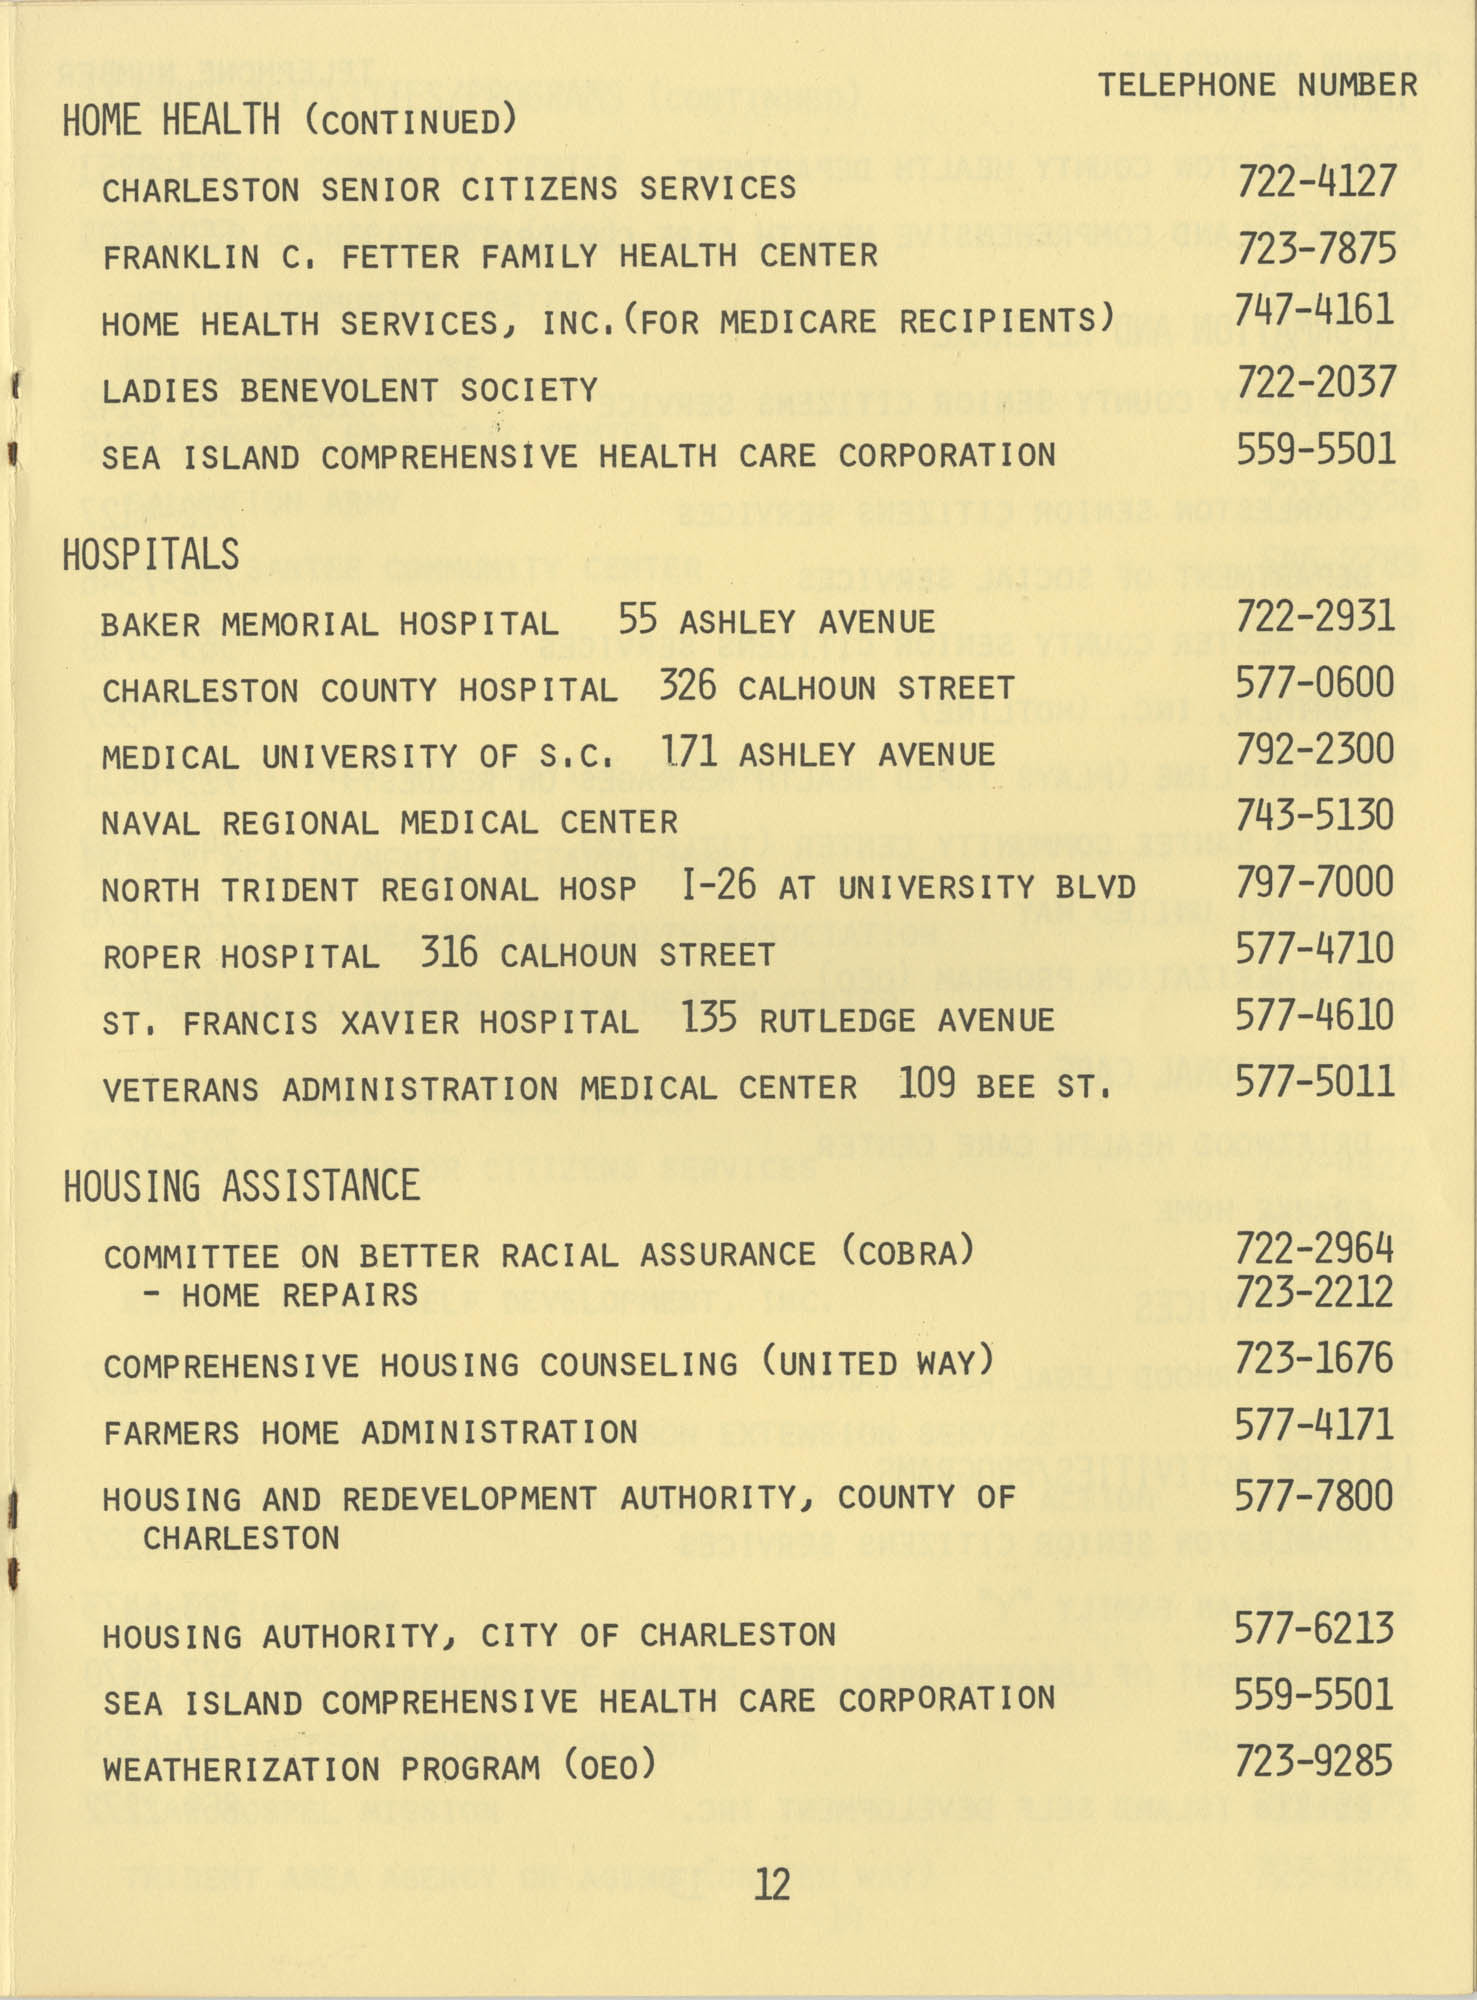 Telephone Line to Care for the Elderly, Page 12